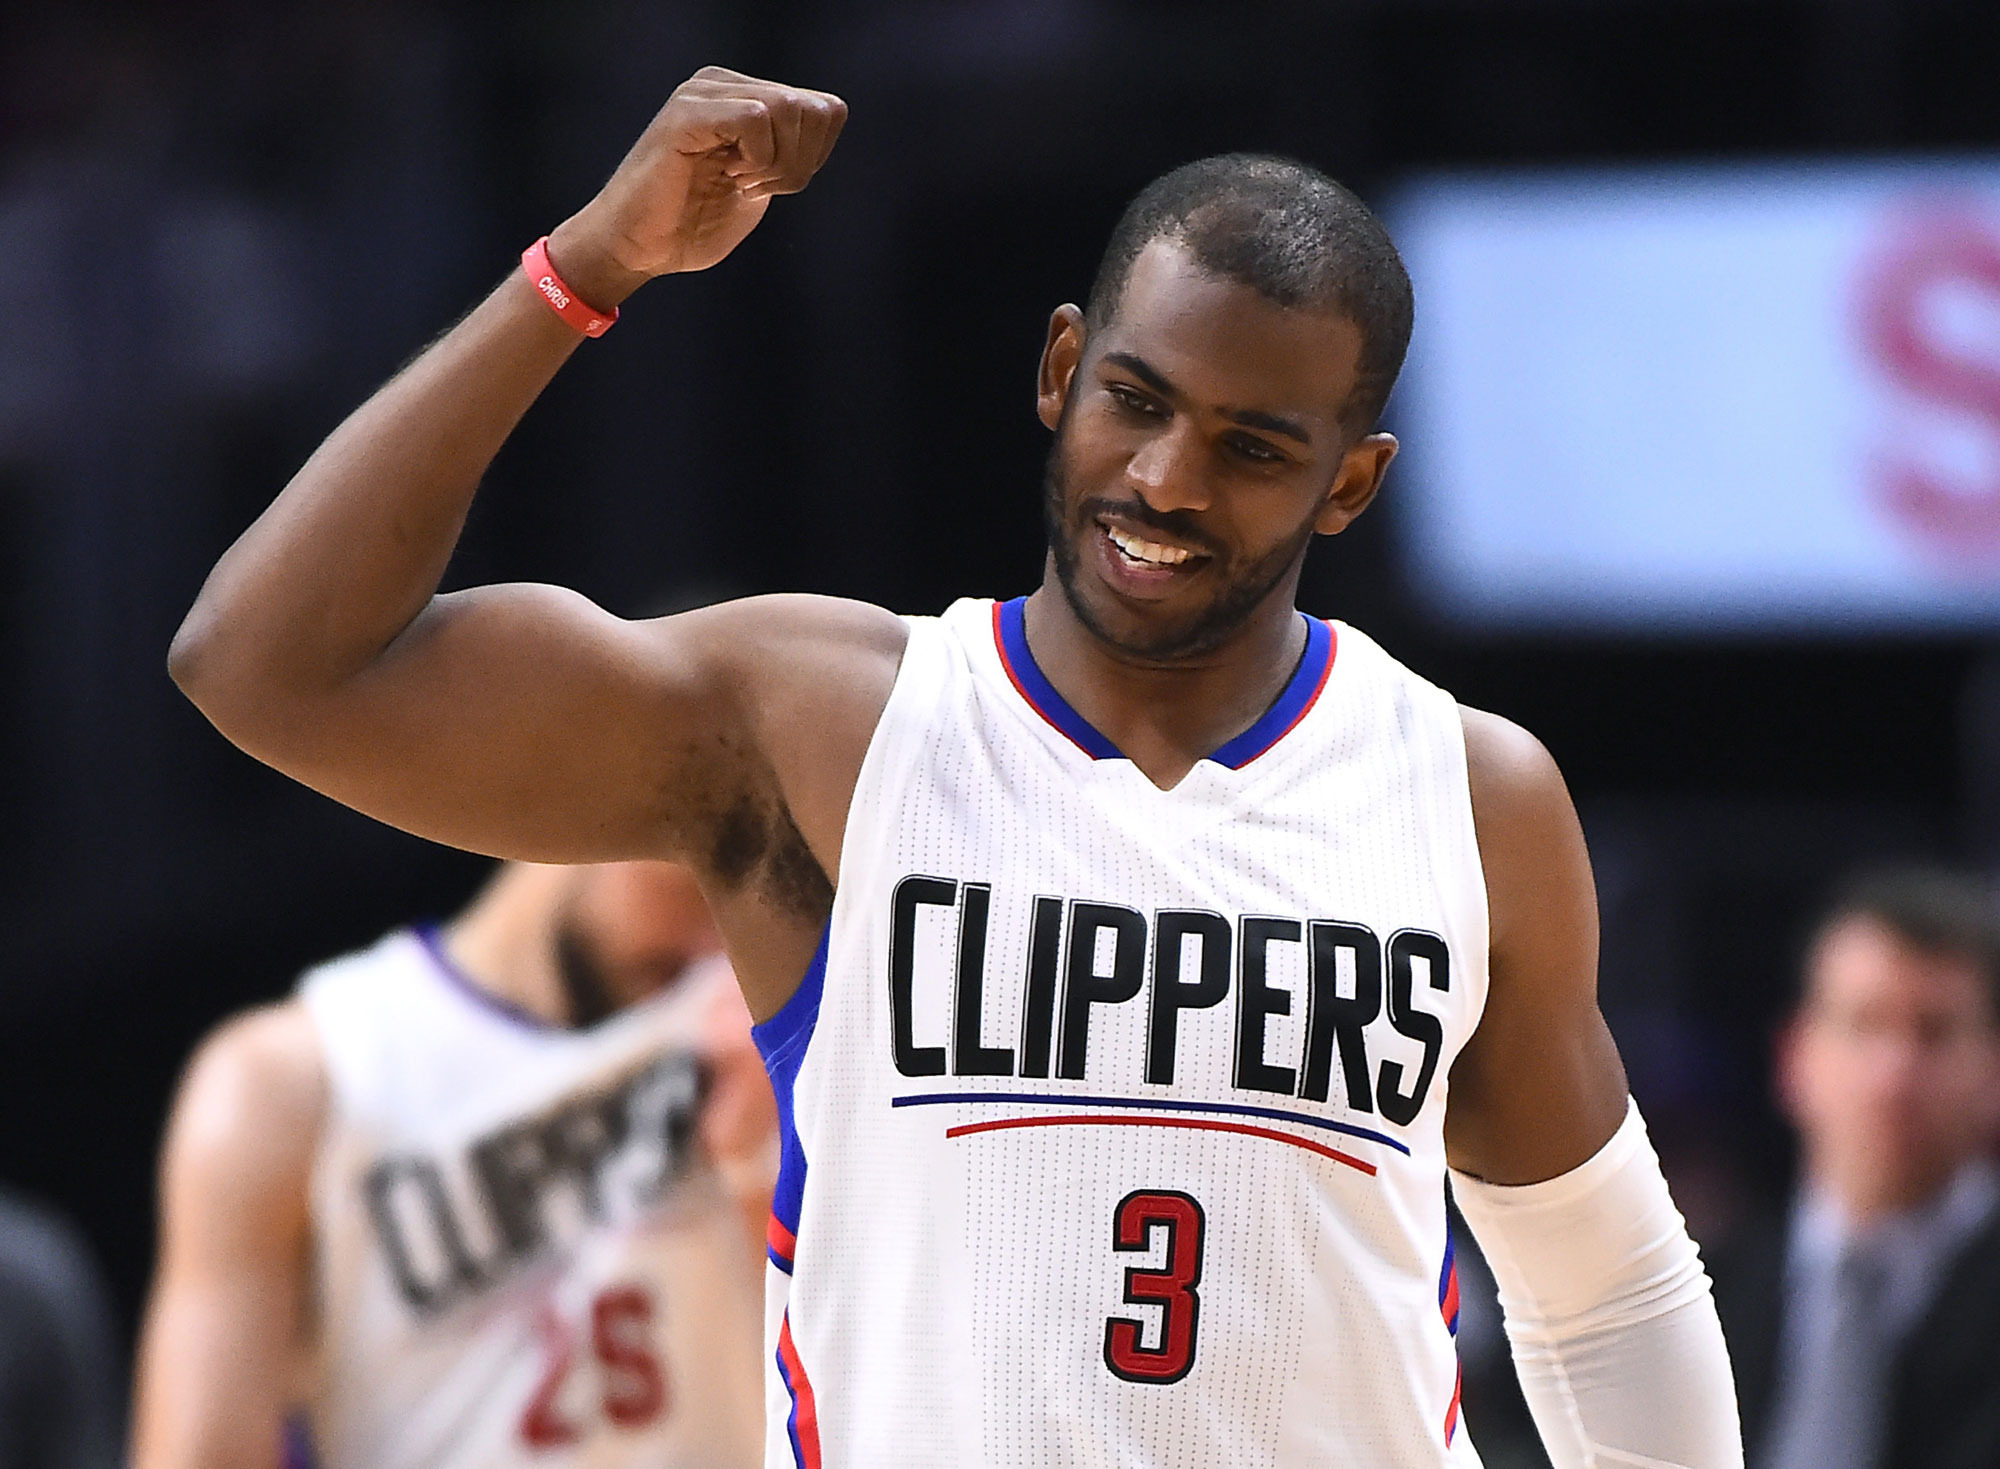 La clippers the impact of blake griffins surgery on the team foxsports com - 25 Slides Ranking The Potential 2017 Nba Unrestricted Free Agents